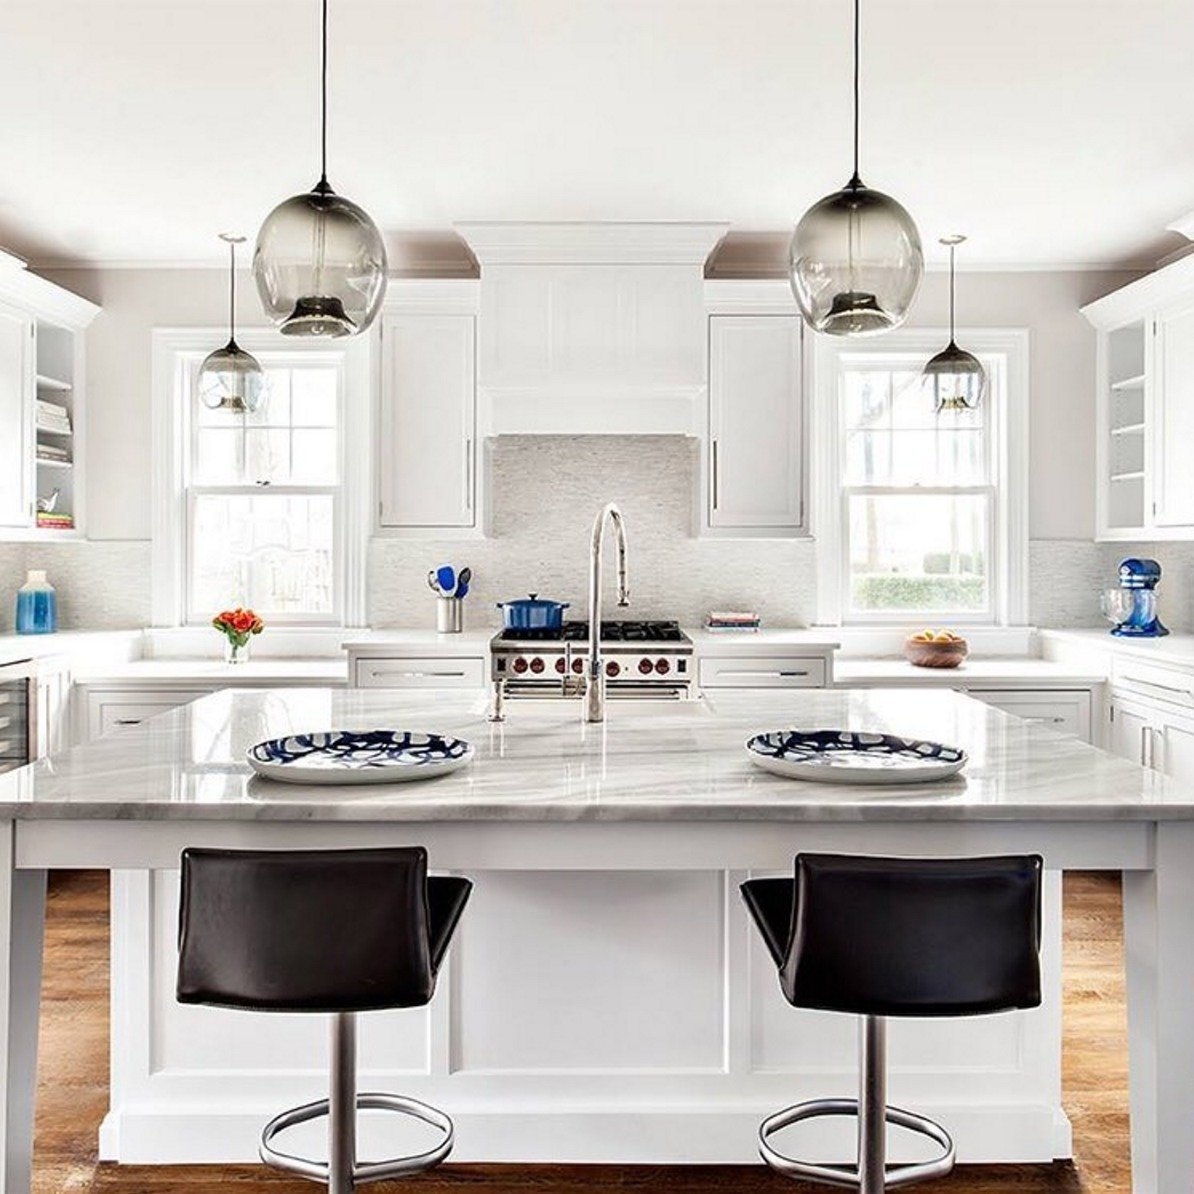 #Kitchen island and kitchen #counter #pendant #lighting come together in this #modern #interior by Clean Design Partners.  60+ Modern Lighting Solutions by Dwell